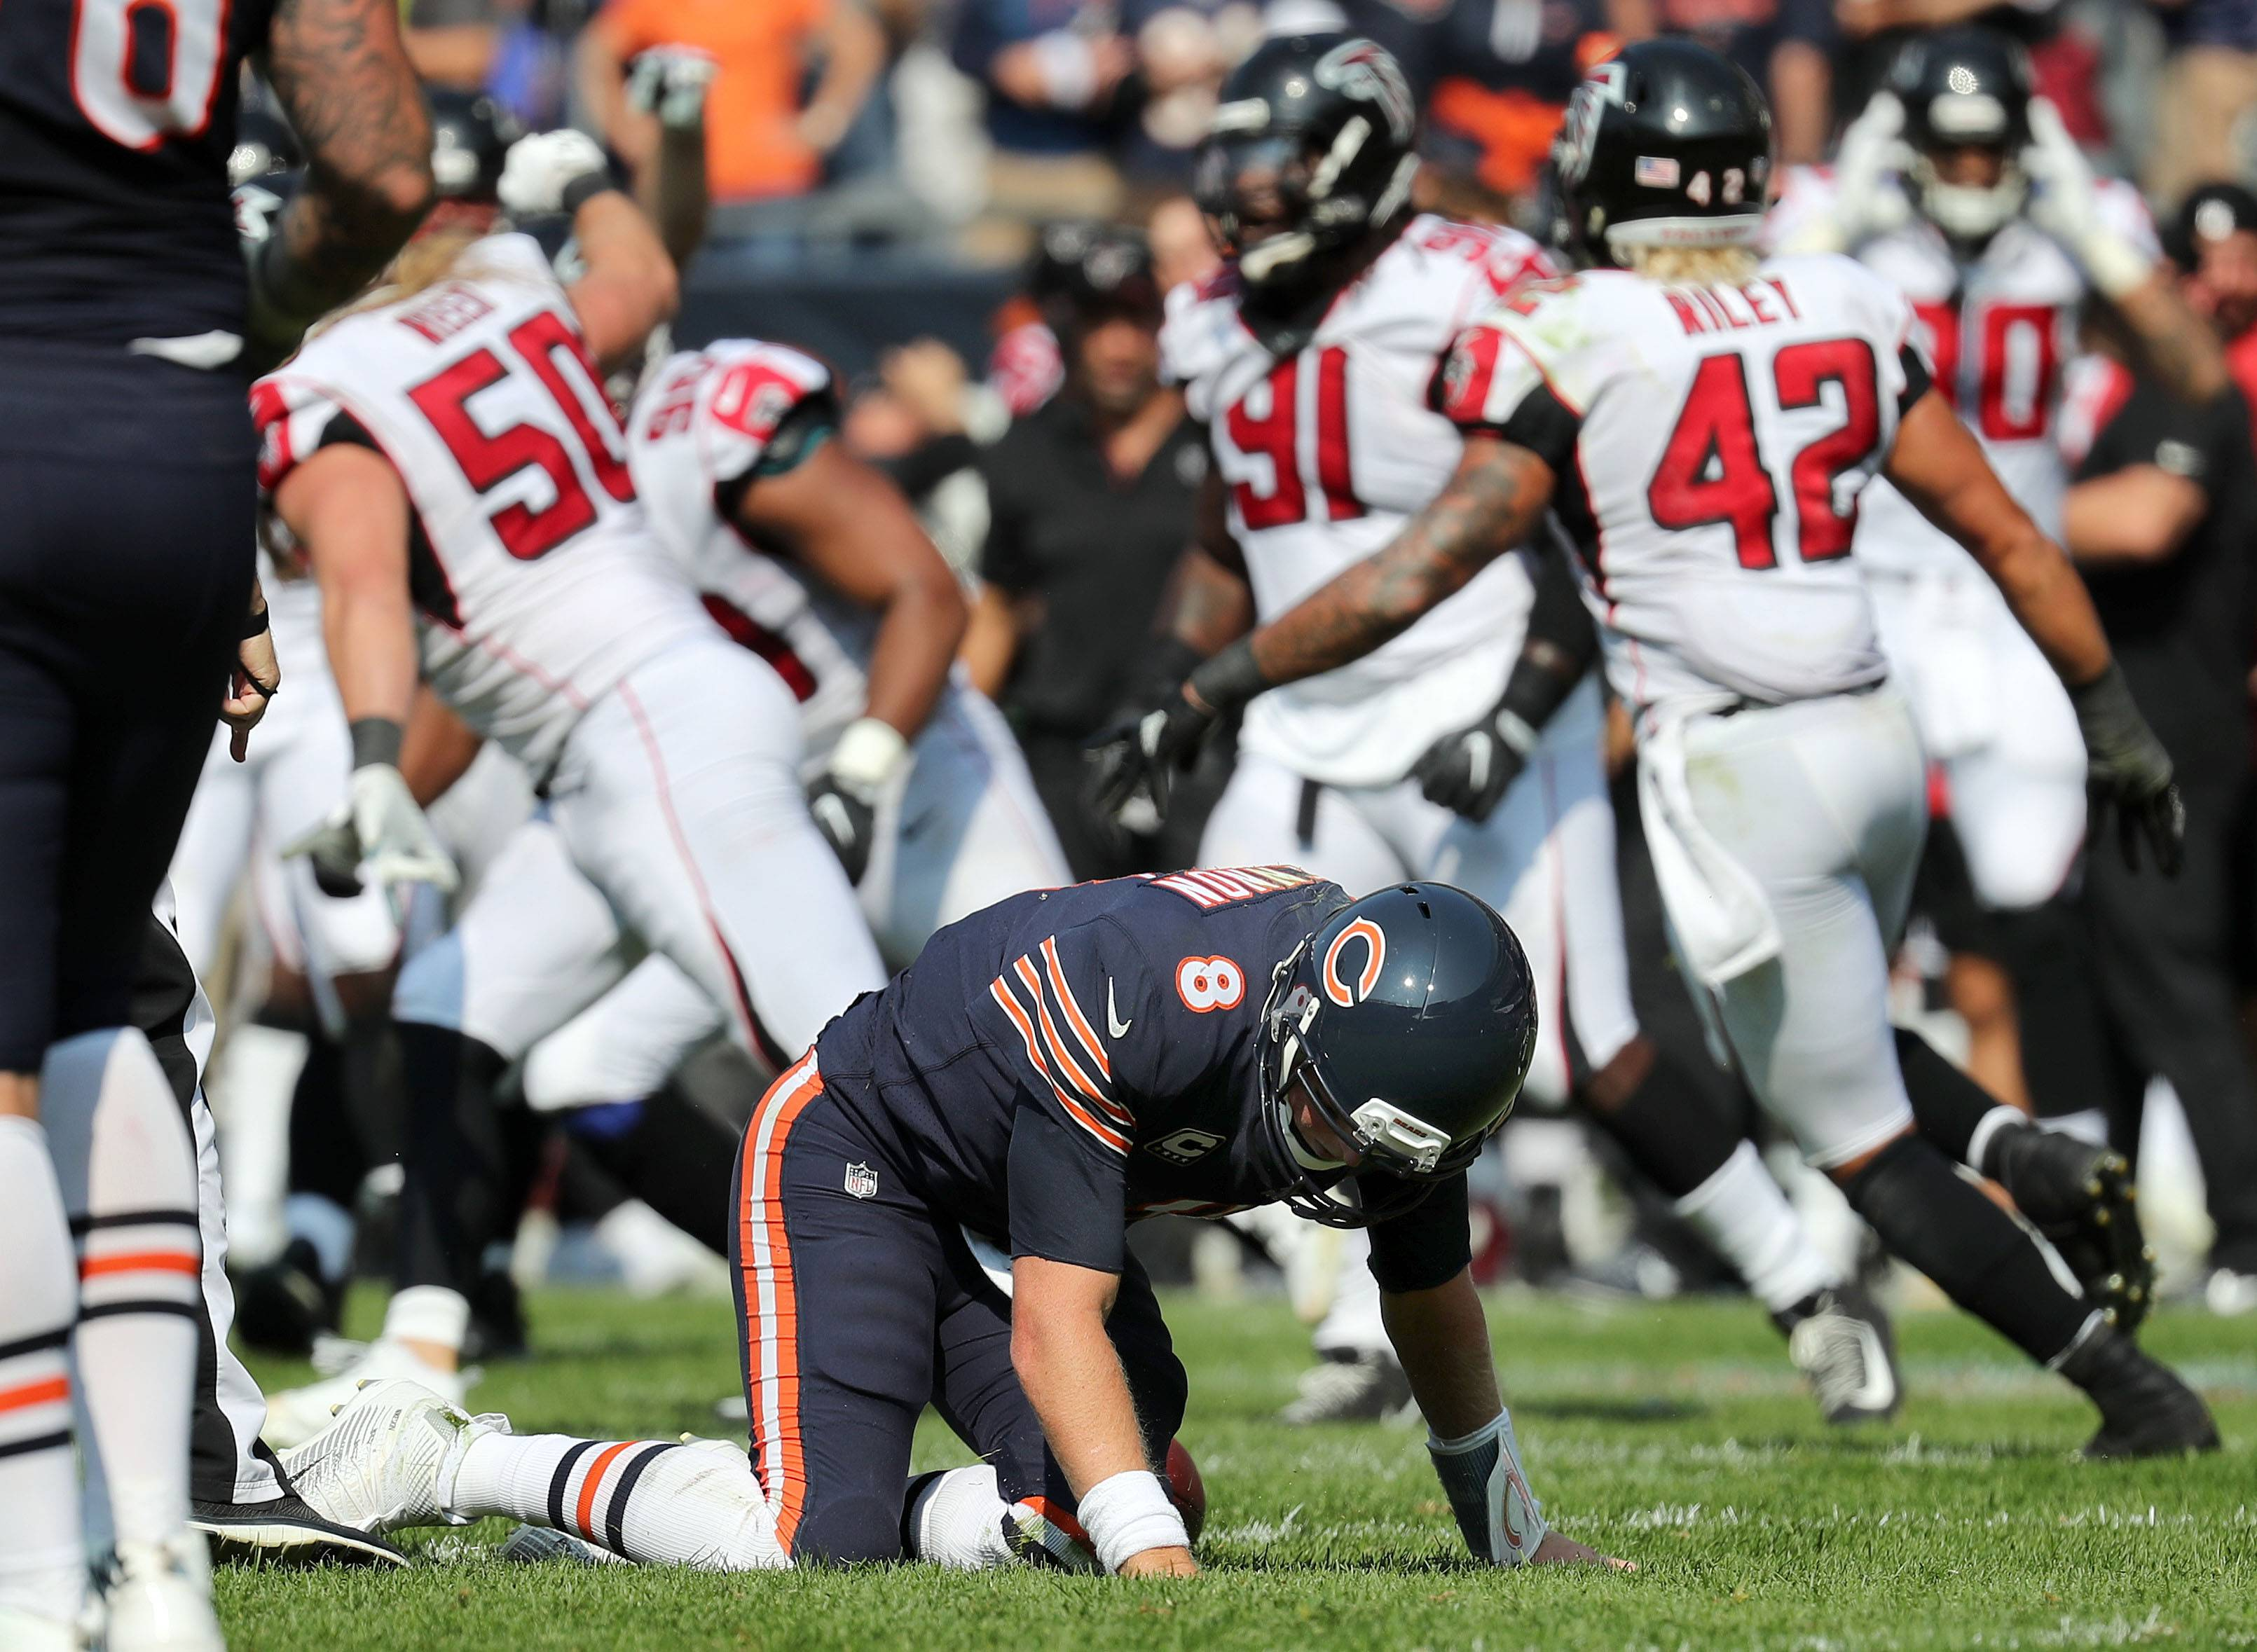 Imrem: Chicago Bears show signs that are positive